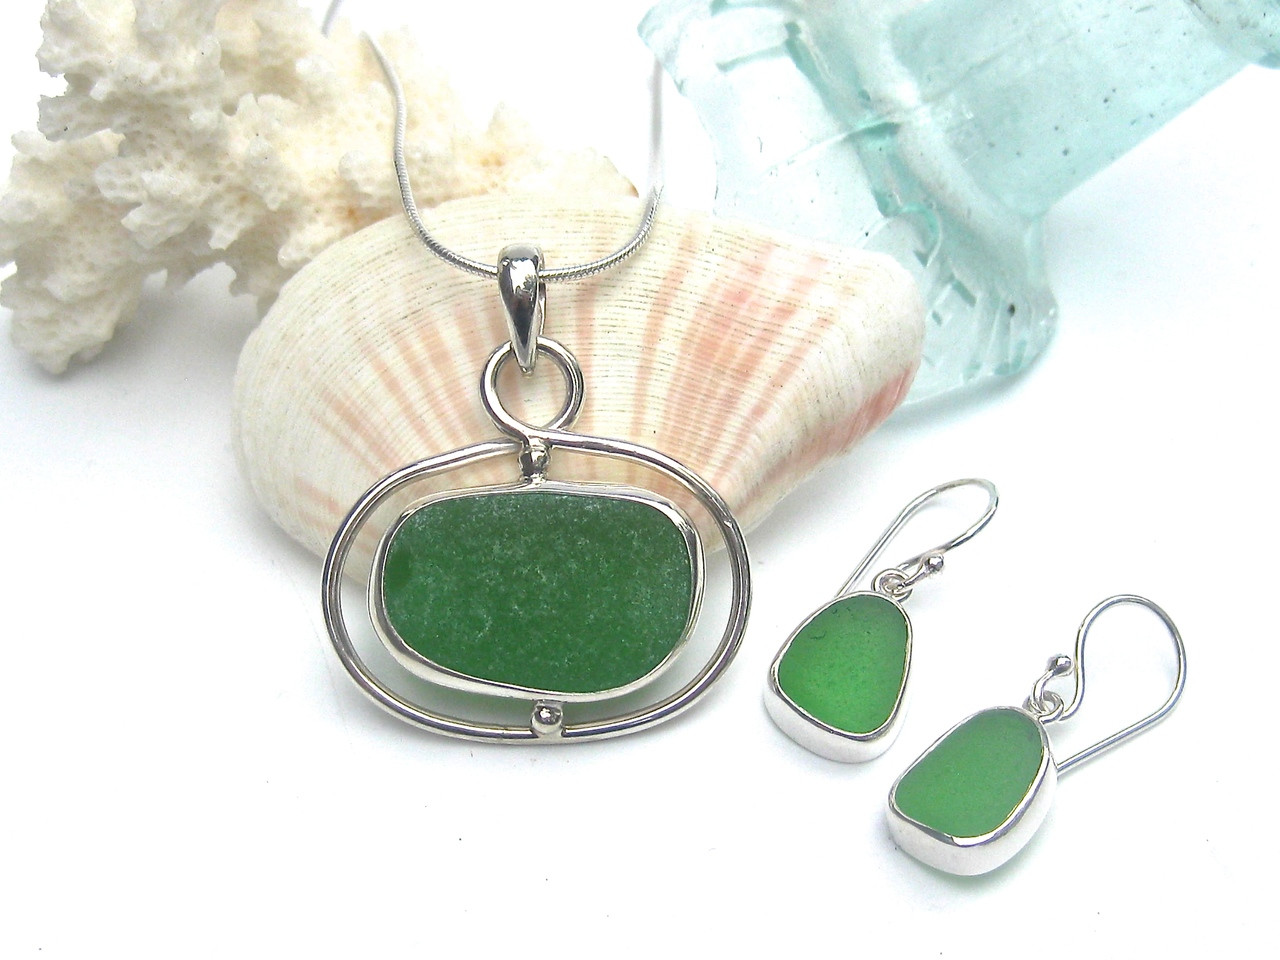 Green Swirl Necklace and Earring Set